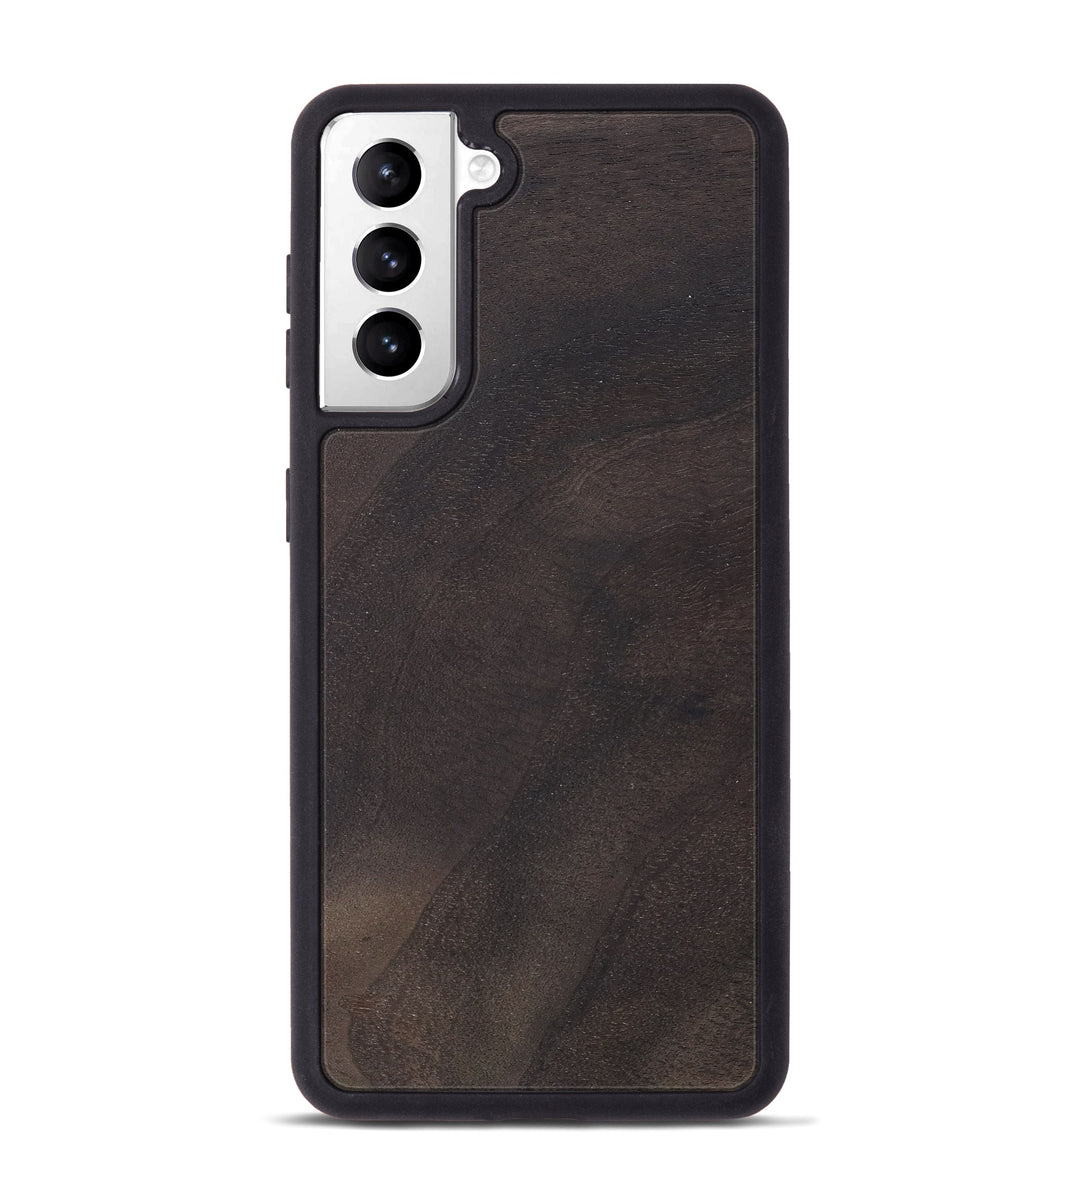 Galaxy S21 Burl Wood Phone Case - Beppie (Walnut Burl, 425434)